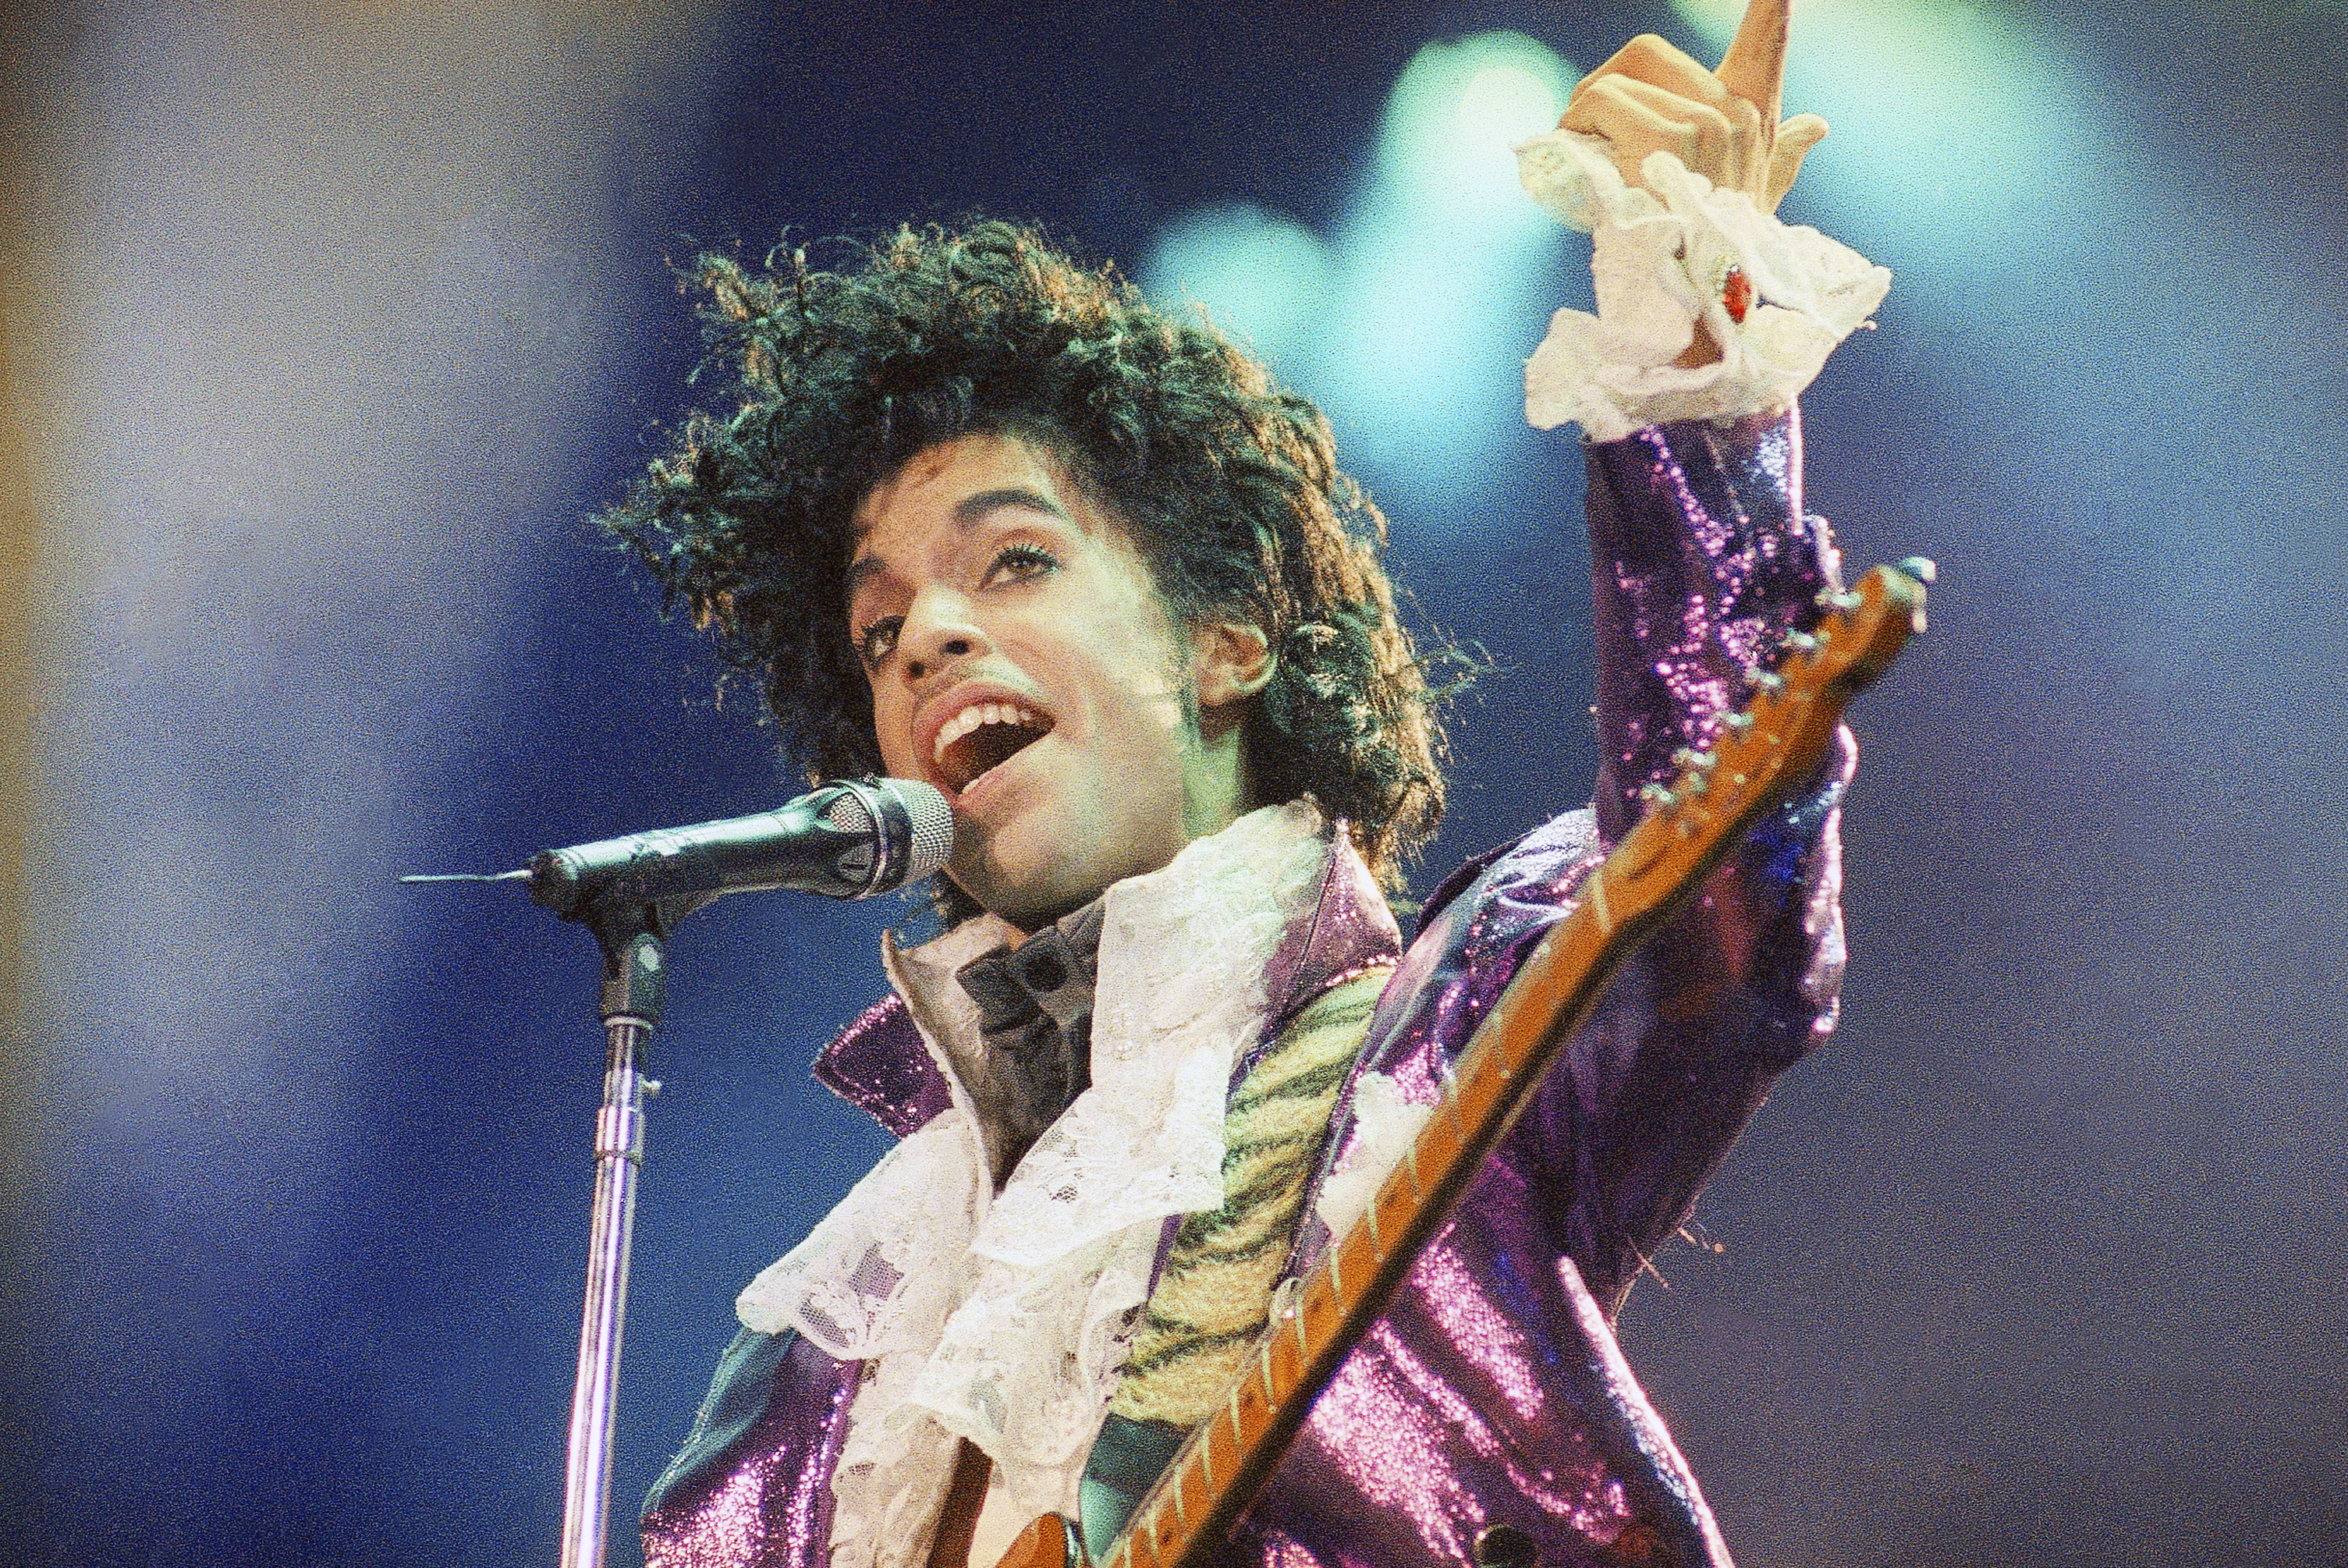 FILE - In this Feb. 18, 1985 file photo, Prince performs at the Forum in Inglewood, Calif. A new song from Prince's late father, produced at Paisley Park, is being released Thursday, June 29, 2017, to celebrate what would have been his 101th birthday.  (AP Photo/Liu Heung Shing, File)